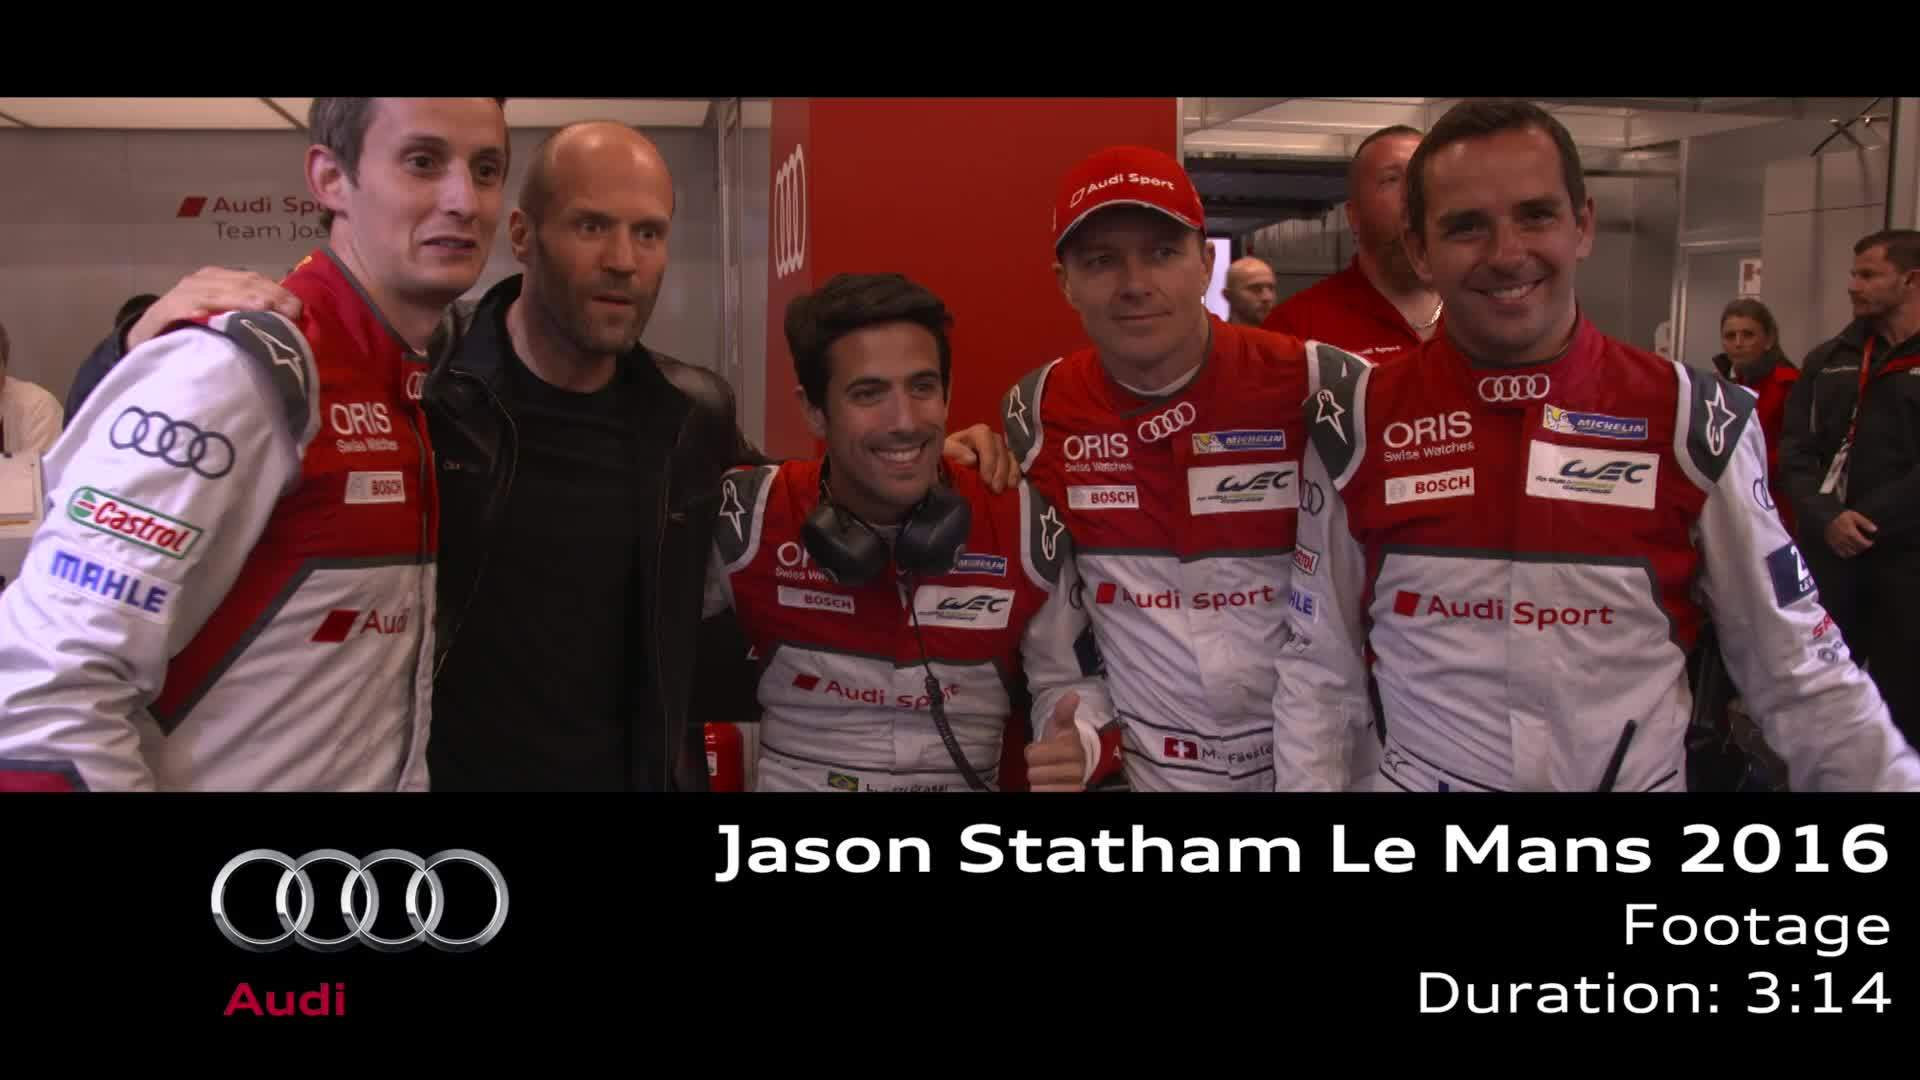 Jason Statham visits Audi at Le Mans - Footage